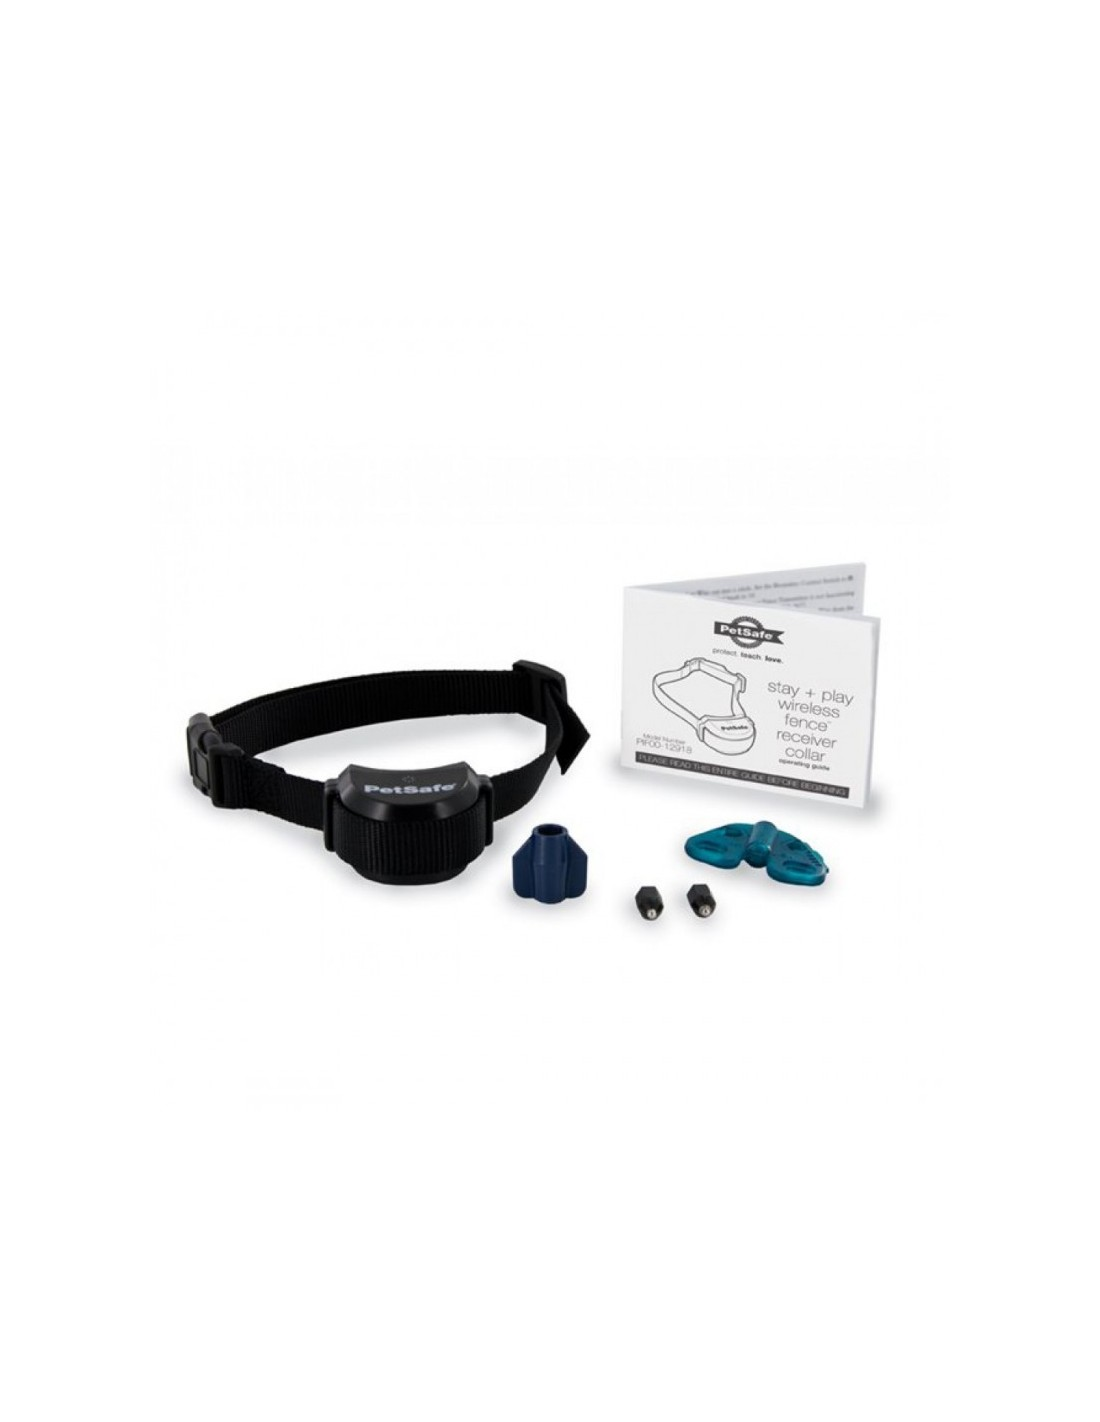 Electronic Dog Containment Collar Wireless